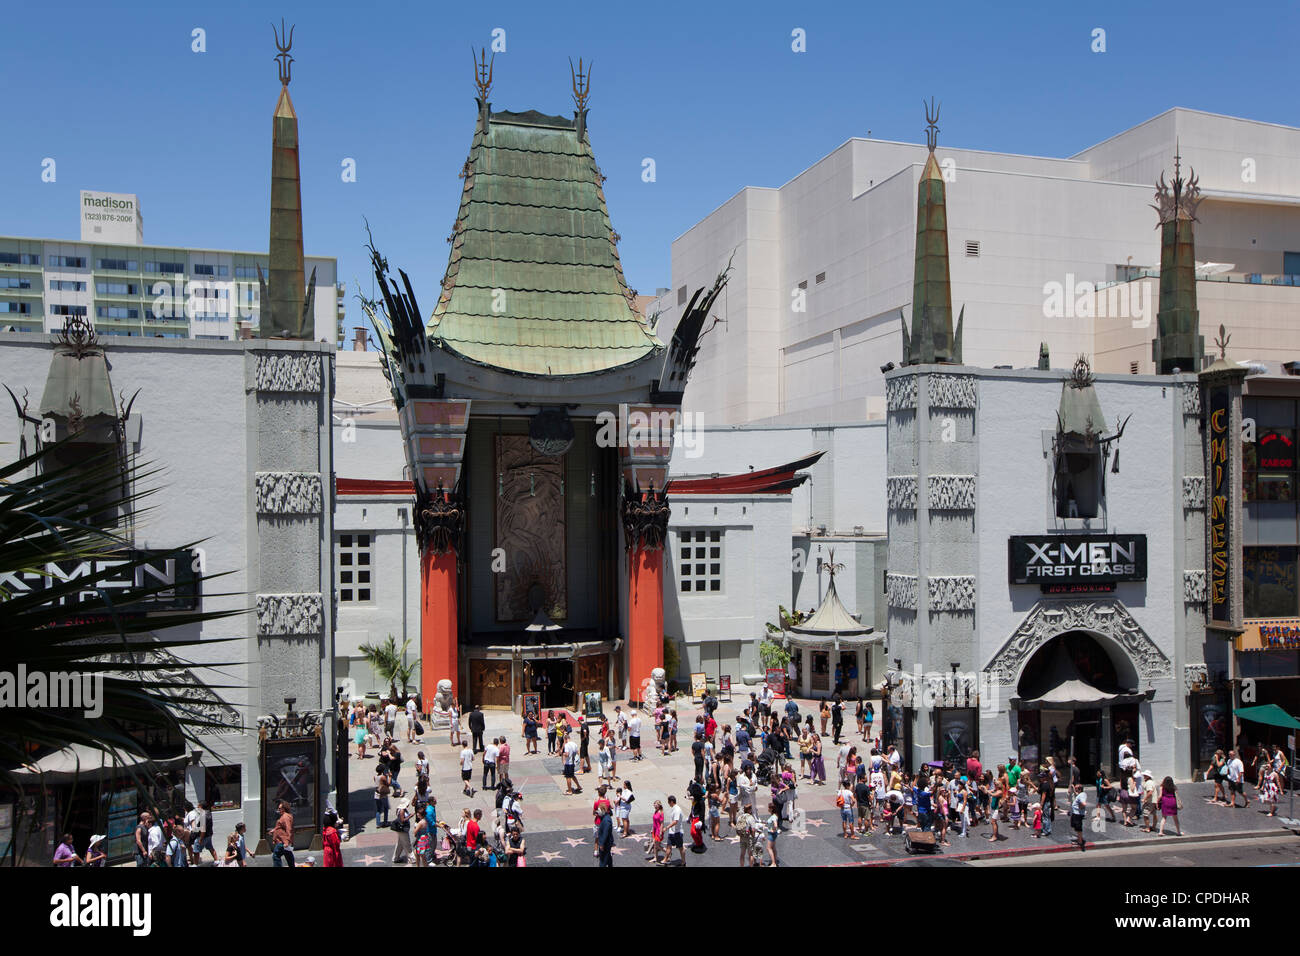 Grauman's Chinese Theatre, Hollywood Boulevard, Hollywood, Los Angeles, California, United States of America, - Stock Image